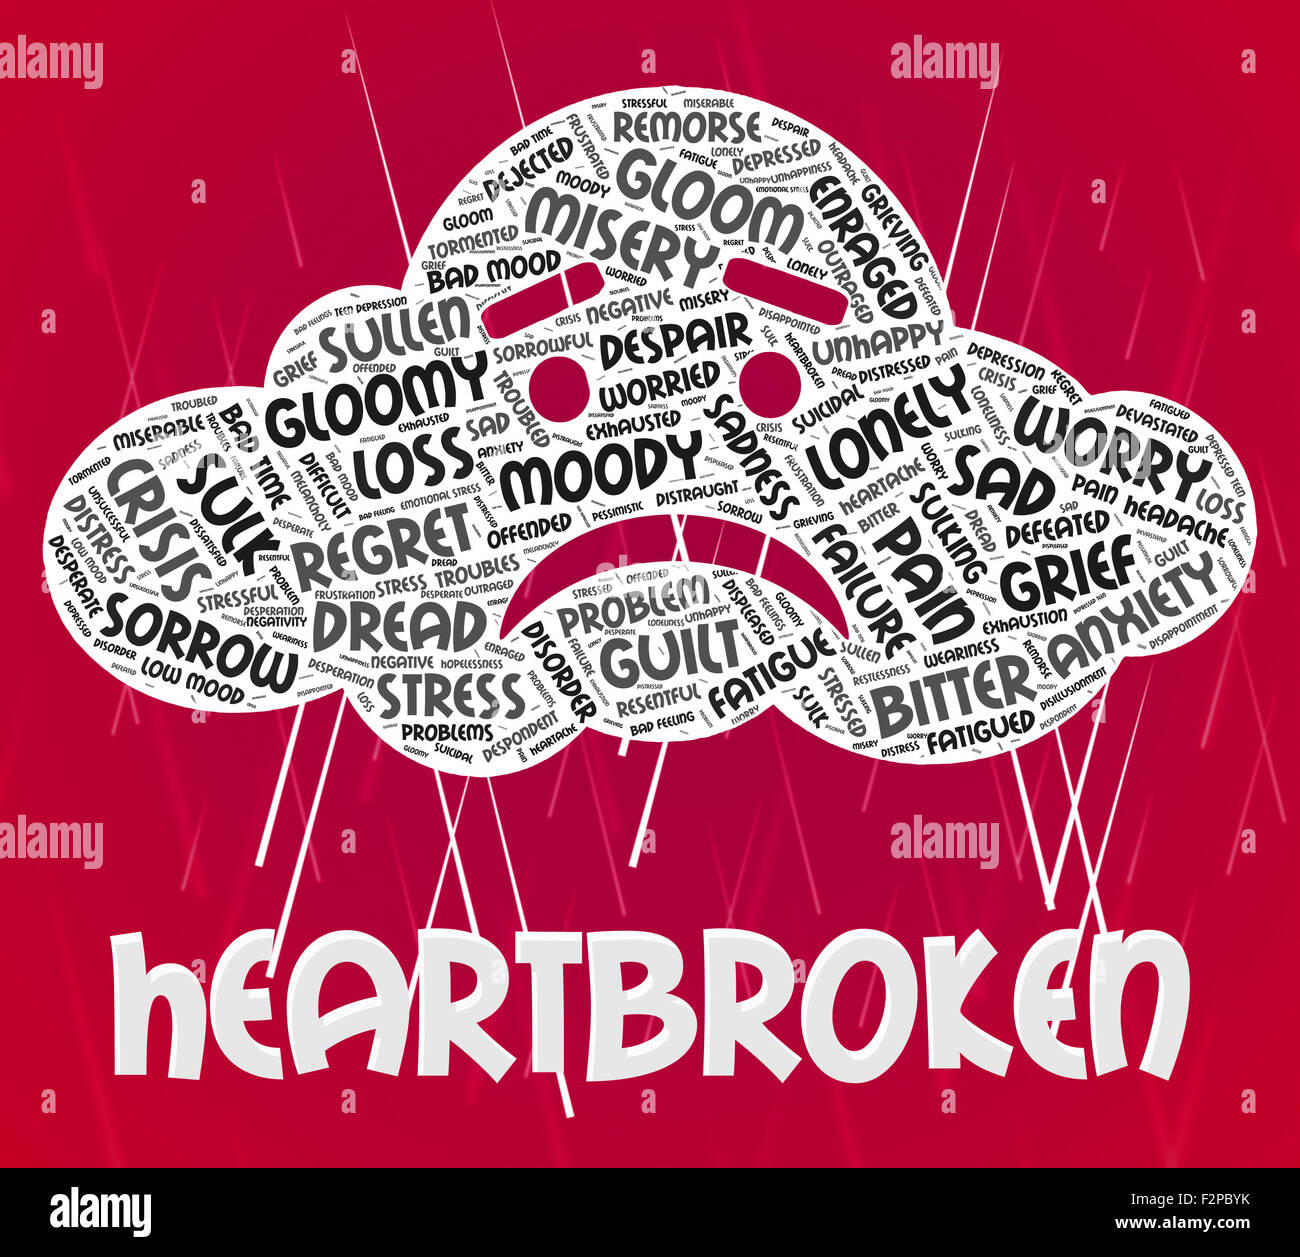 Heartbroken Word Representing Heavy Hearted And Downcast - Stock Image